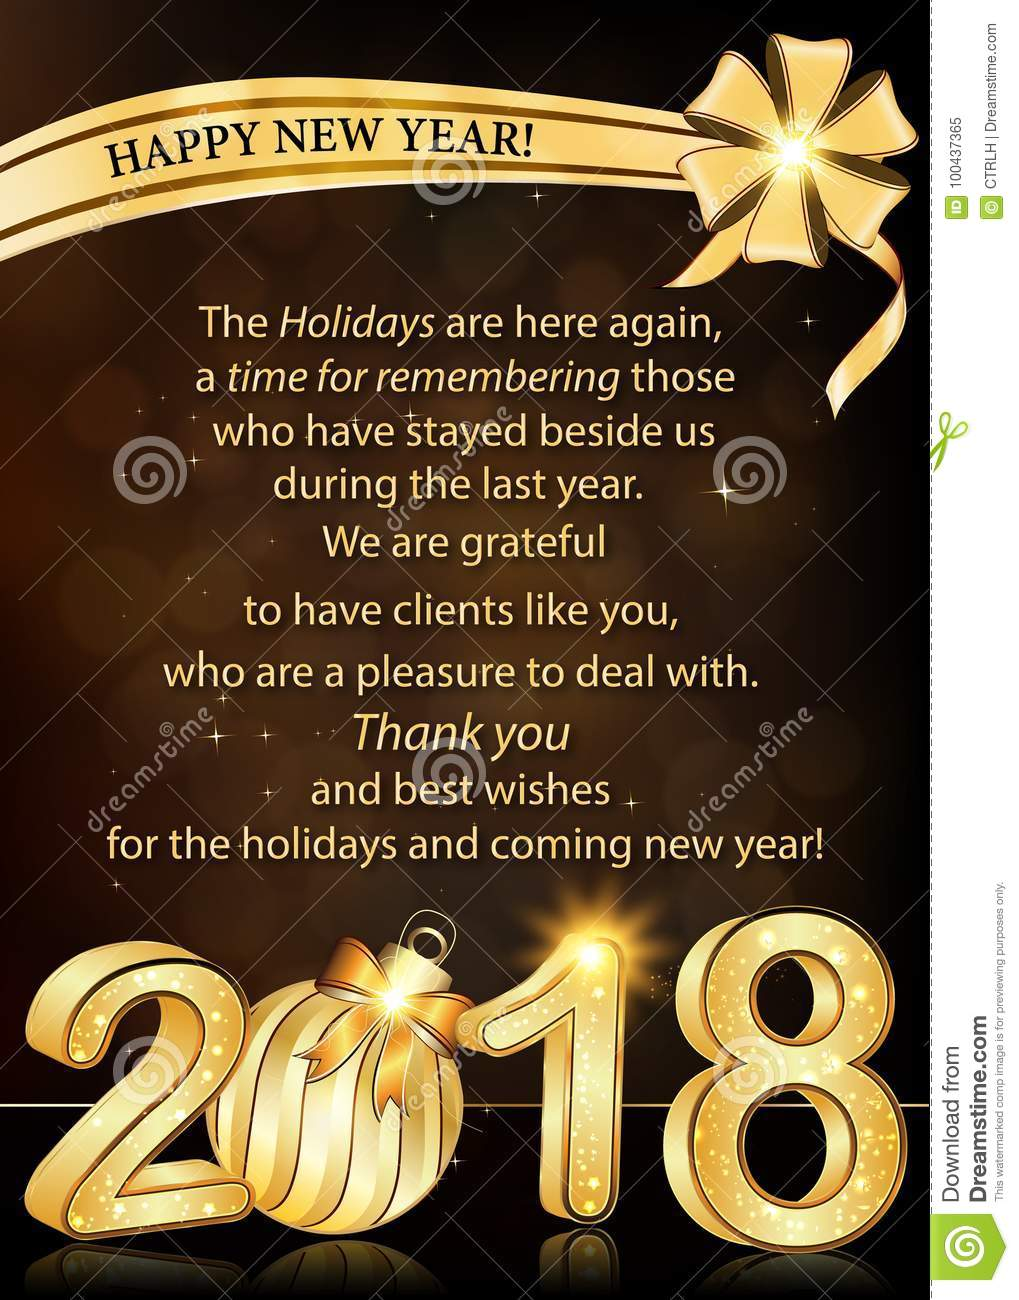 happy new year 2018 corporate greeting card